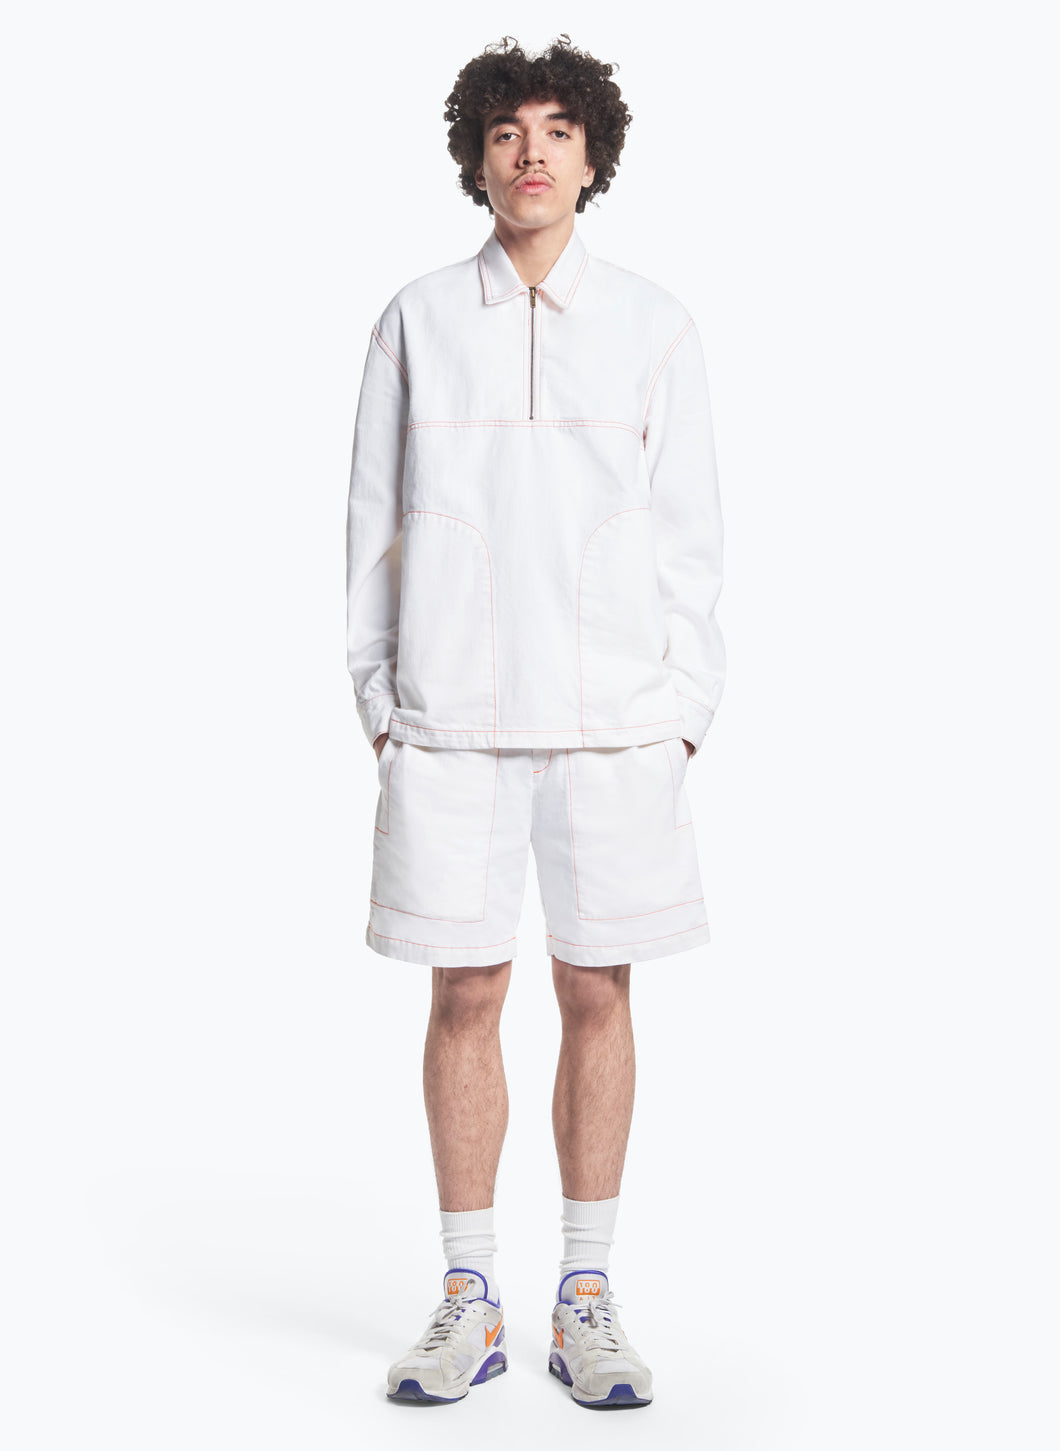 Polo Pullover with Stitched Pockets in White Denim